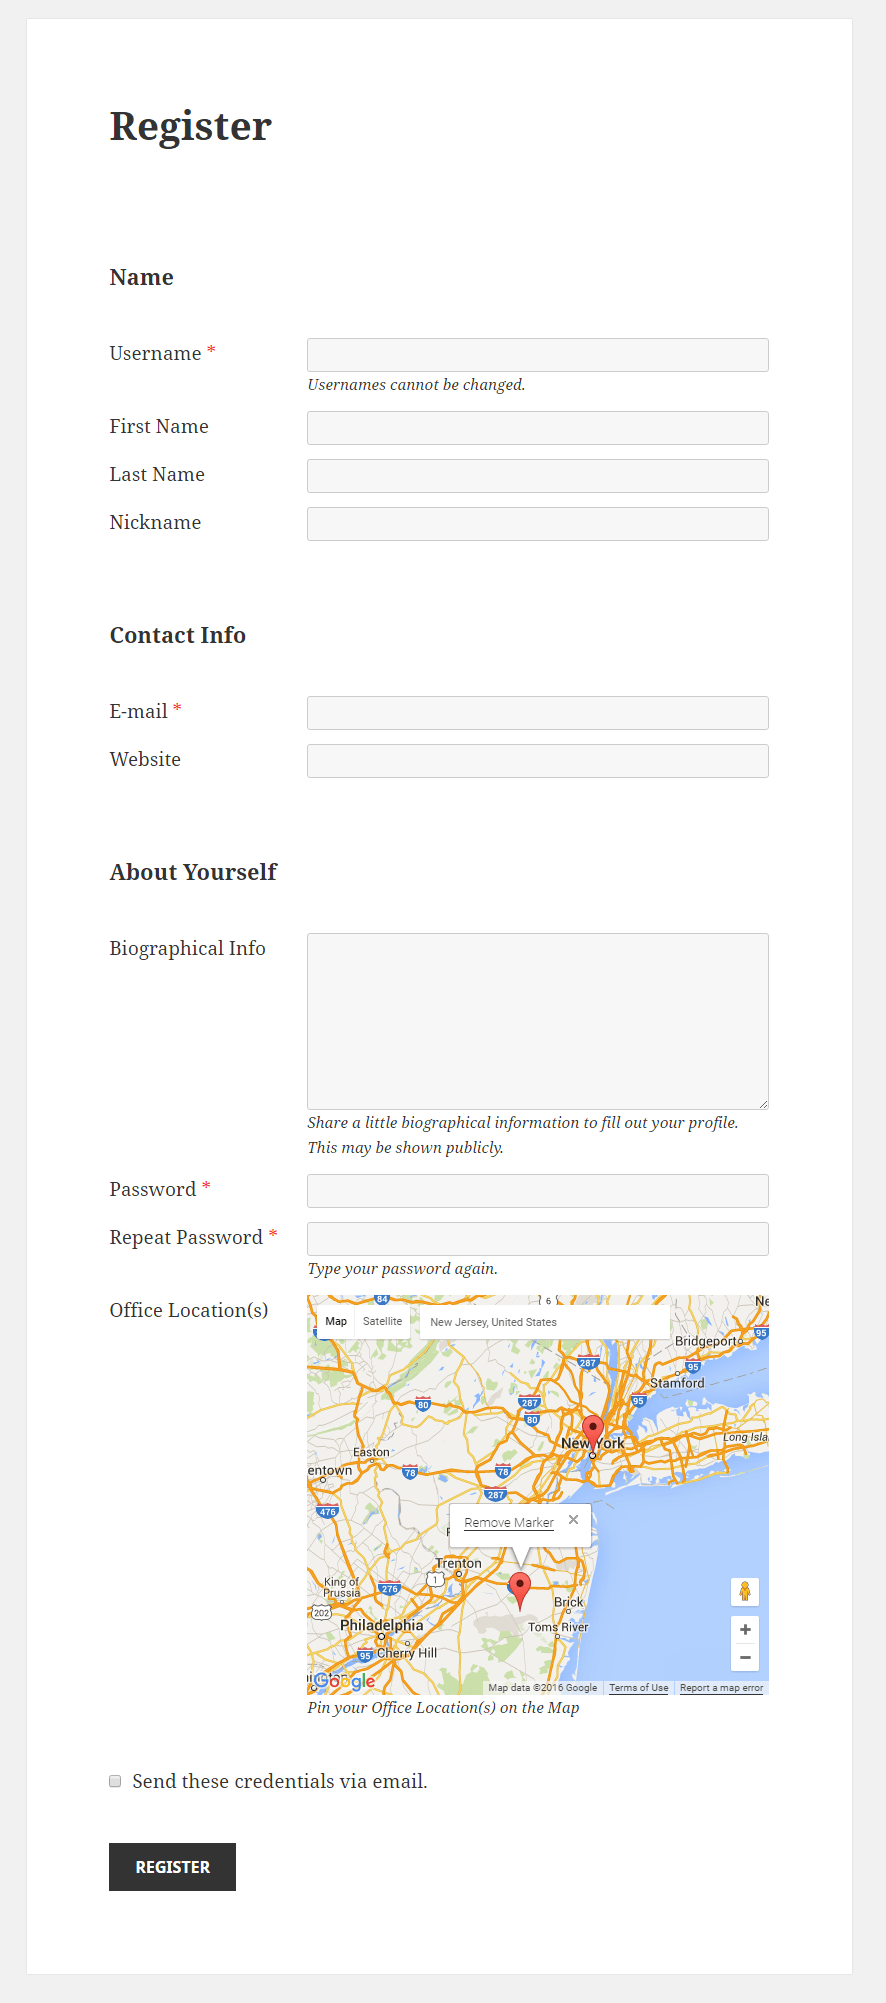 Profile Builder - Map Field Front End